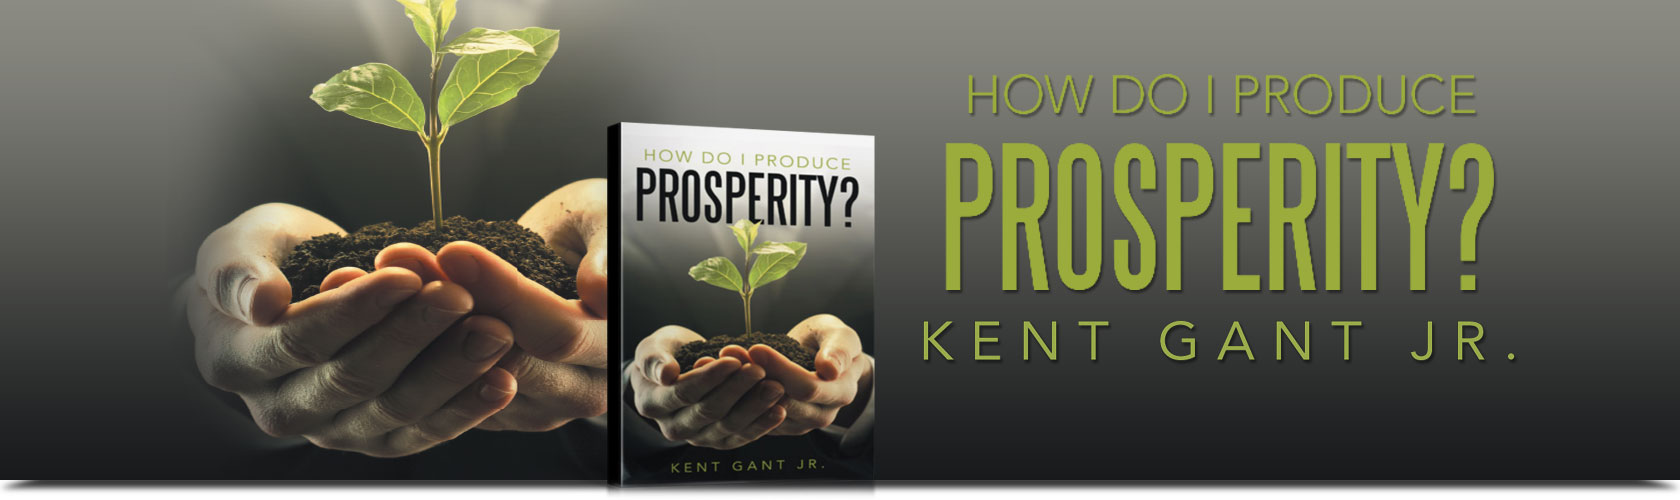 How Do I Produce Prosperity? By Kent Gant Jr